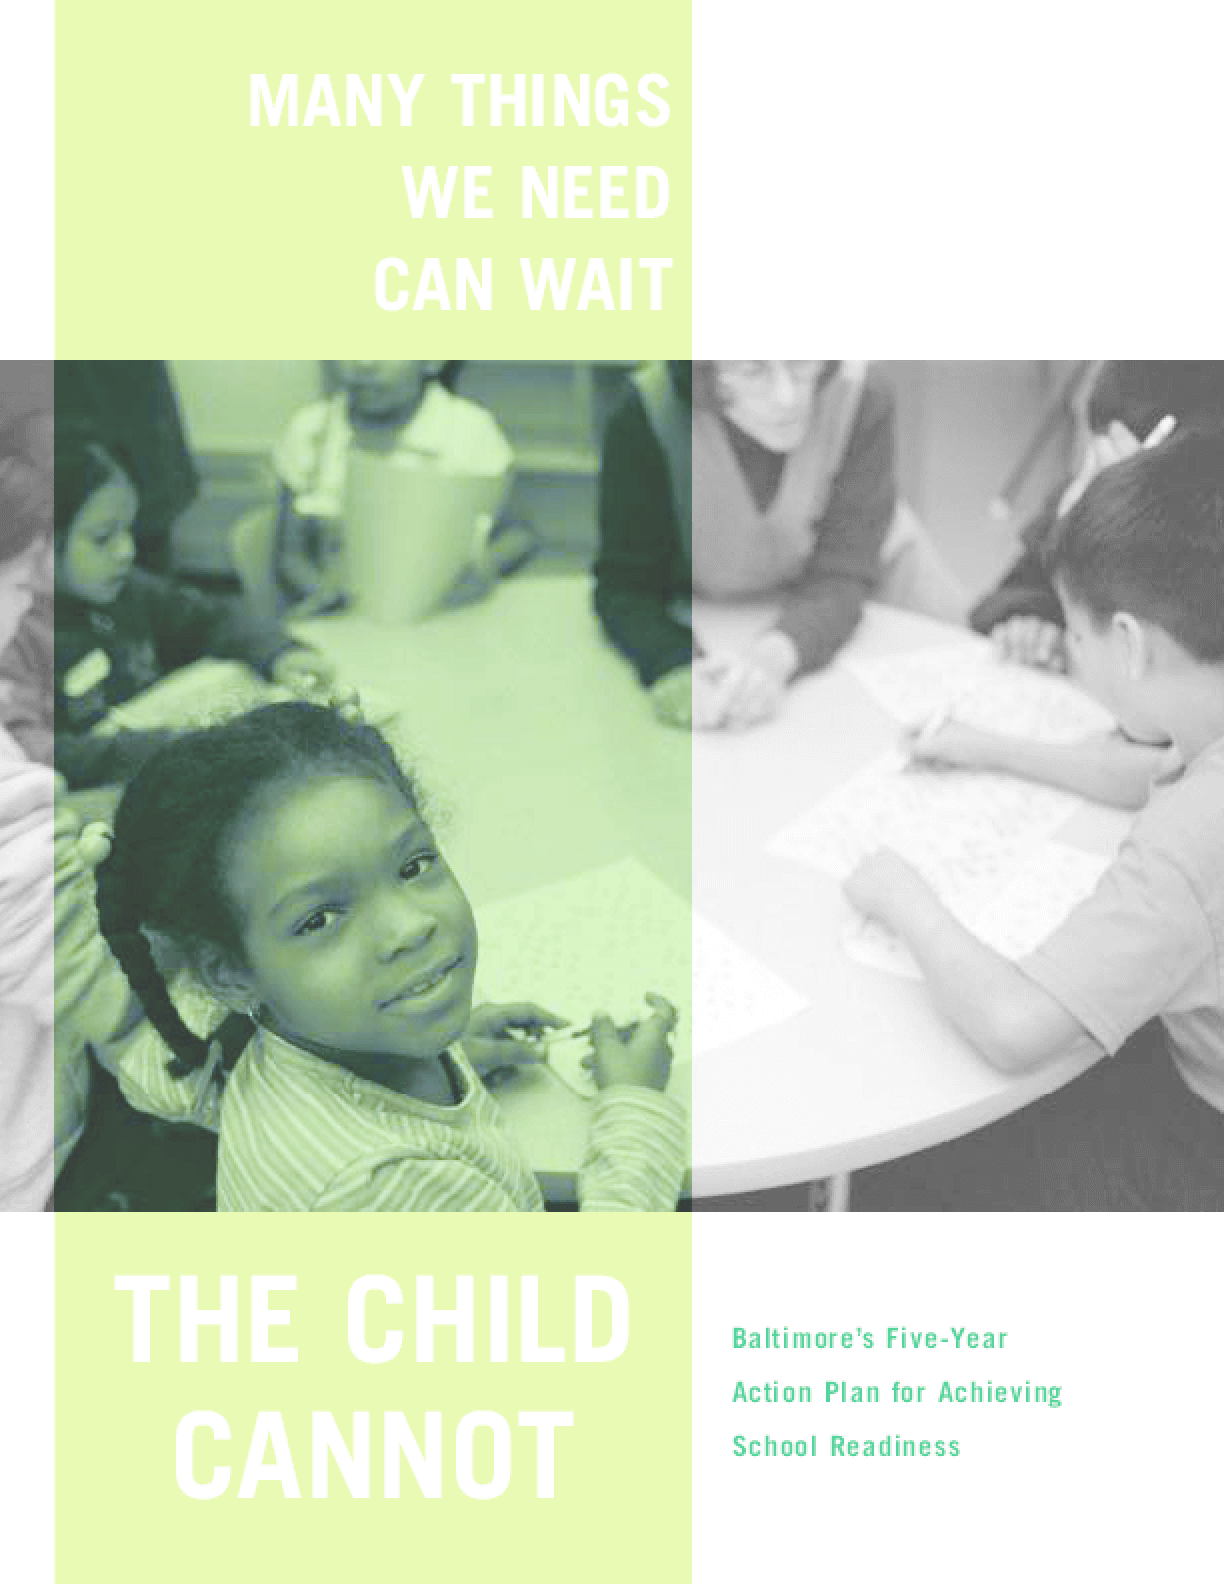 Baltimore's Five Year Action Plan for Achieving School Readiness